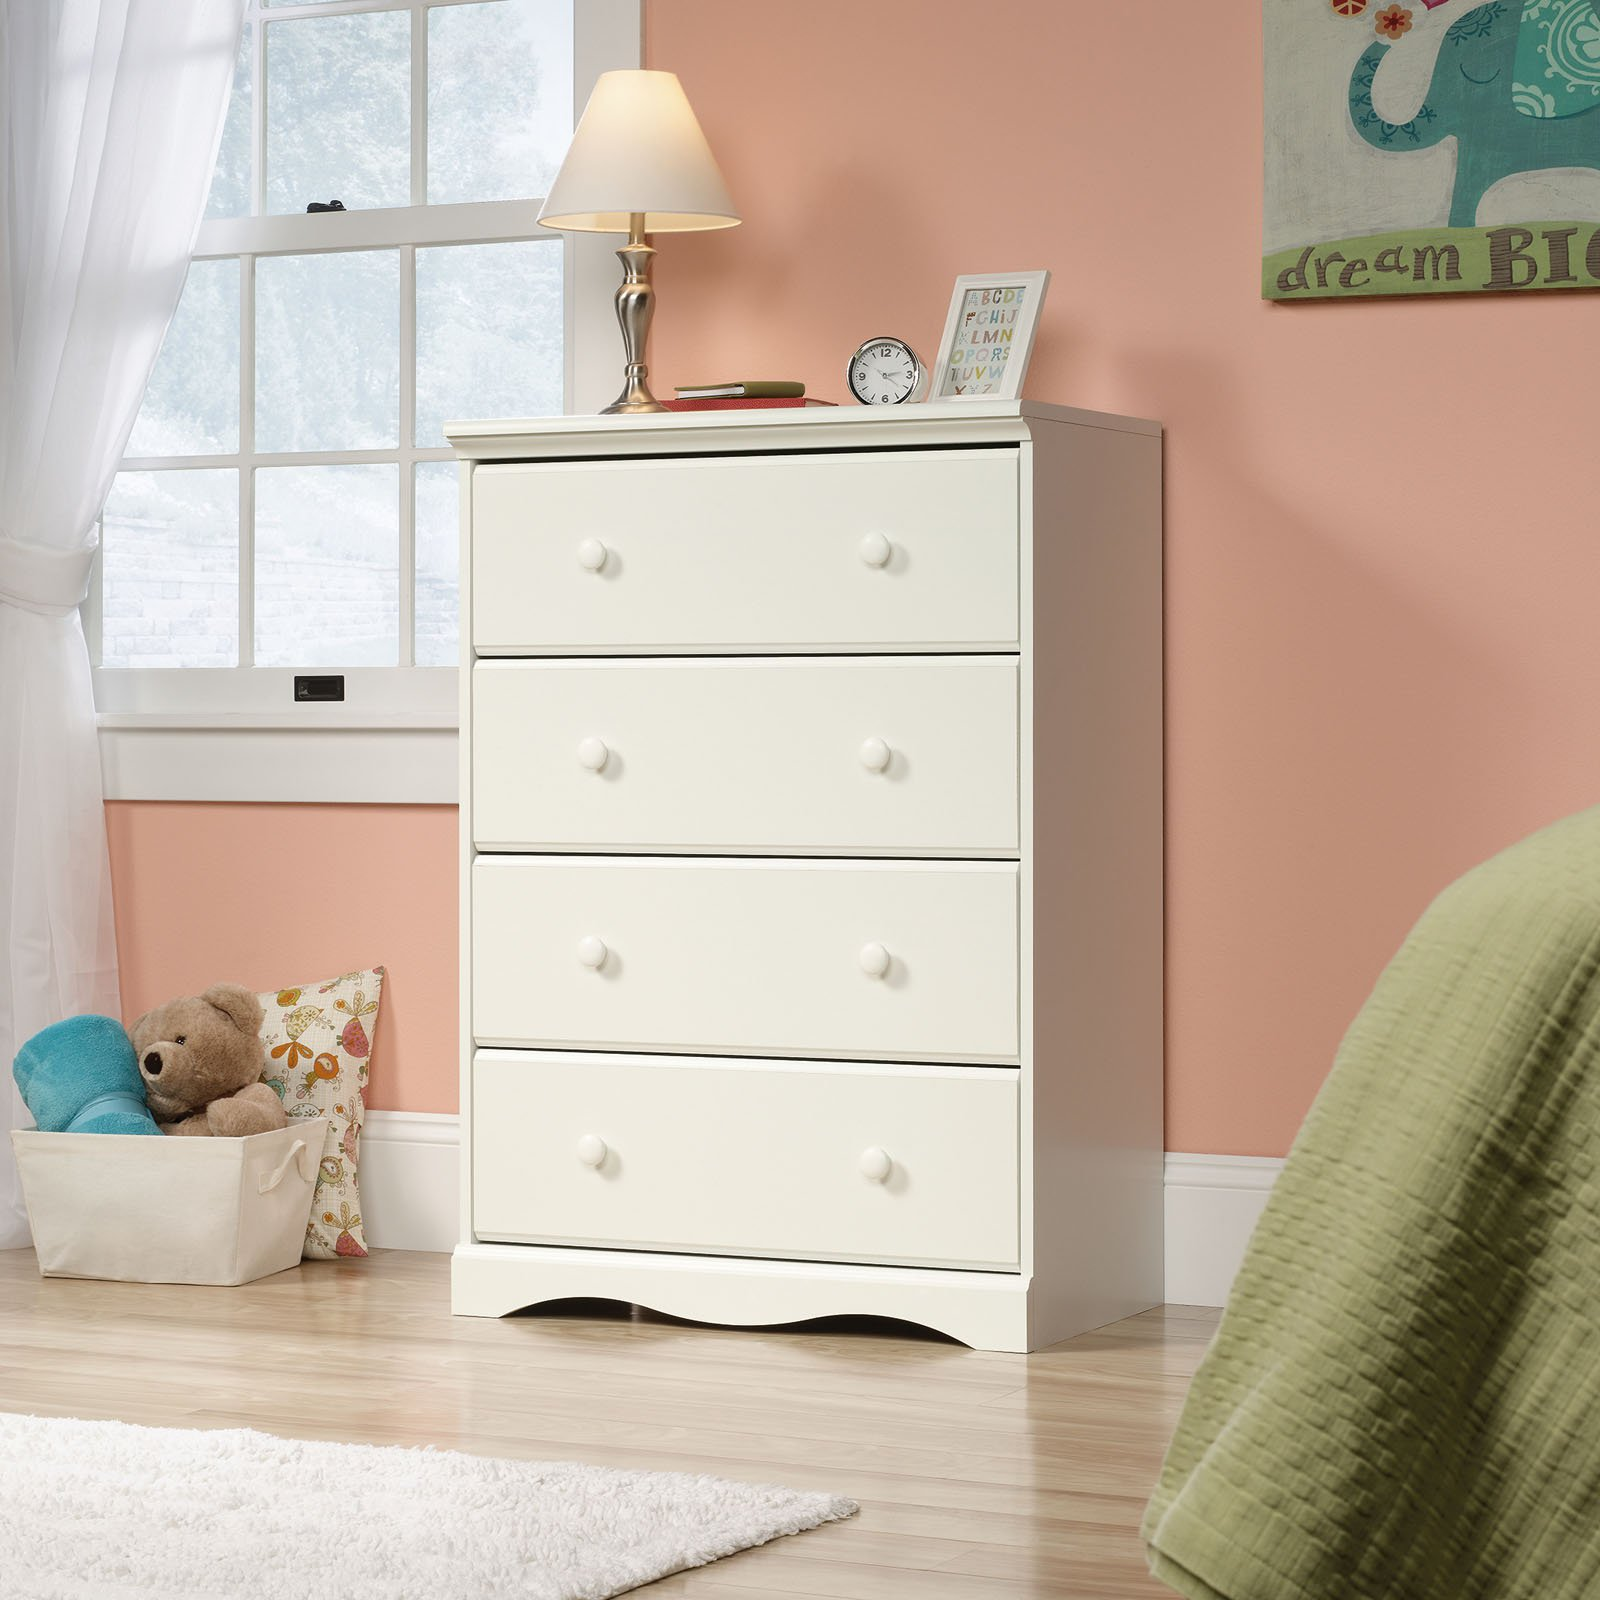 Sauder Pogo 4 Drawer Chest in Soft White